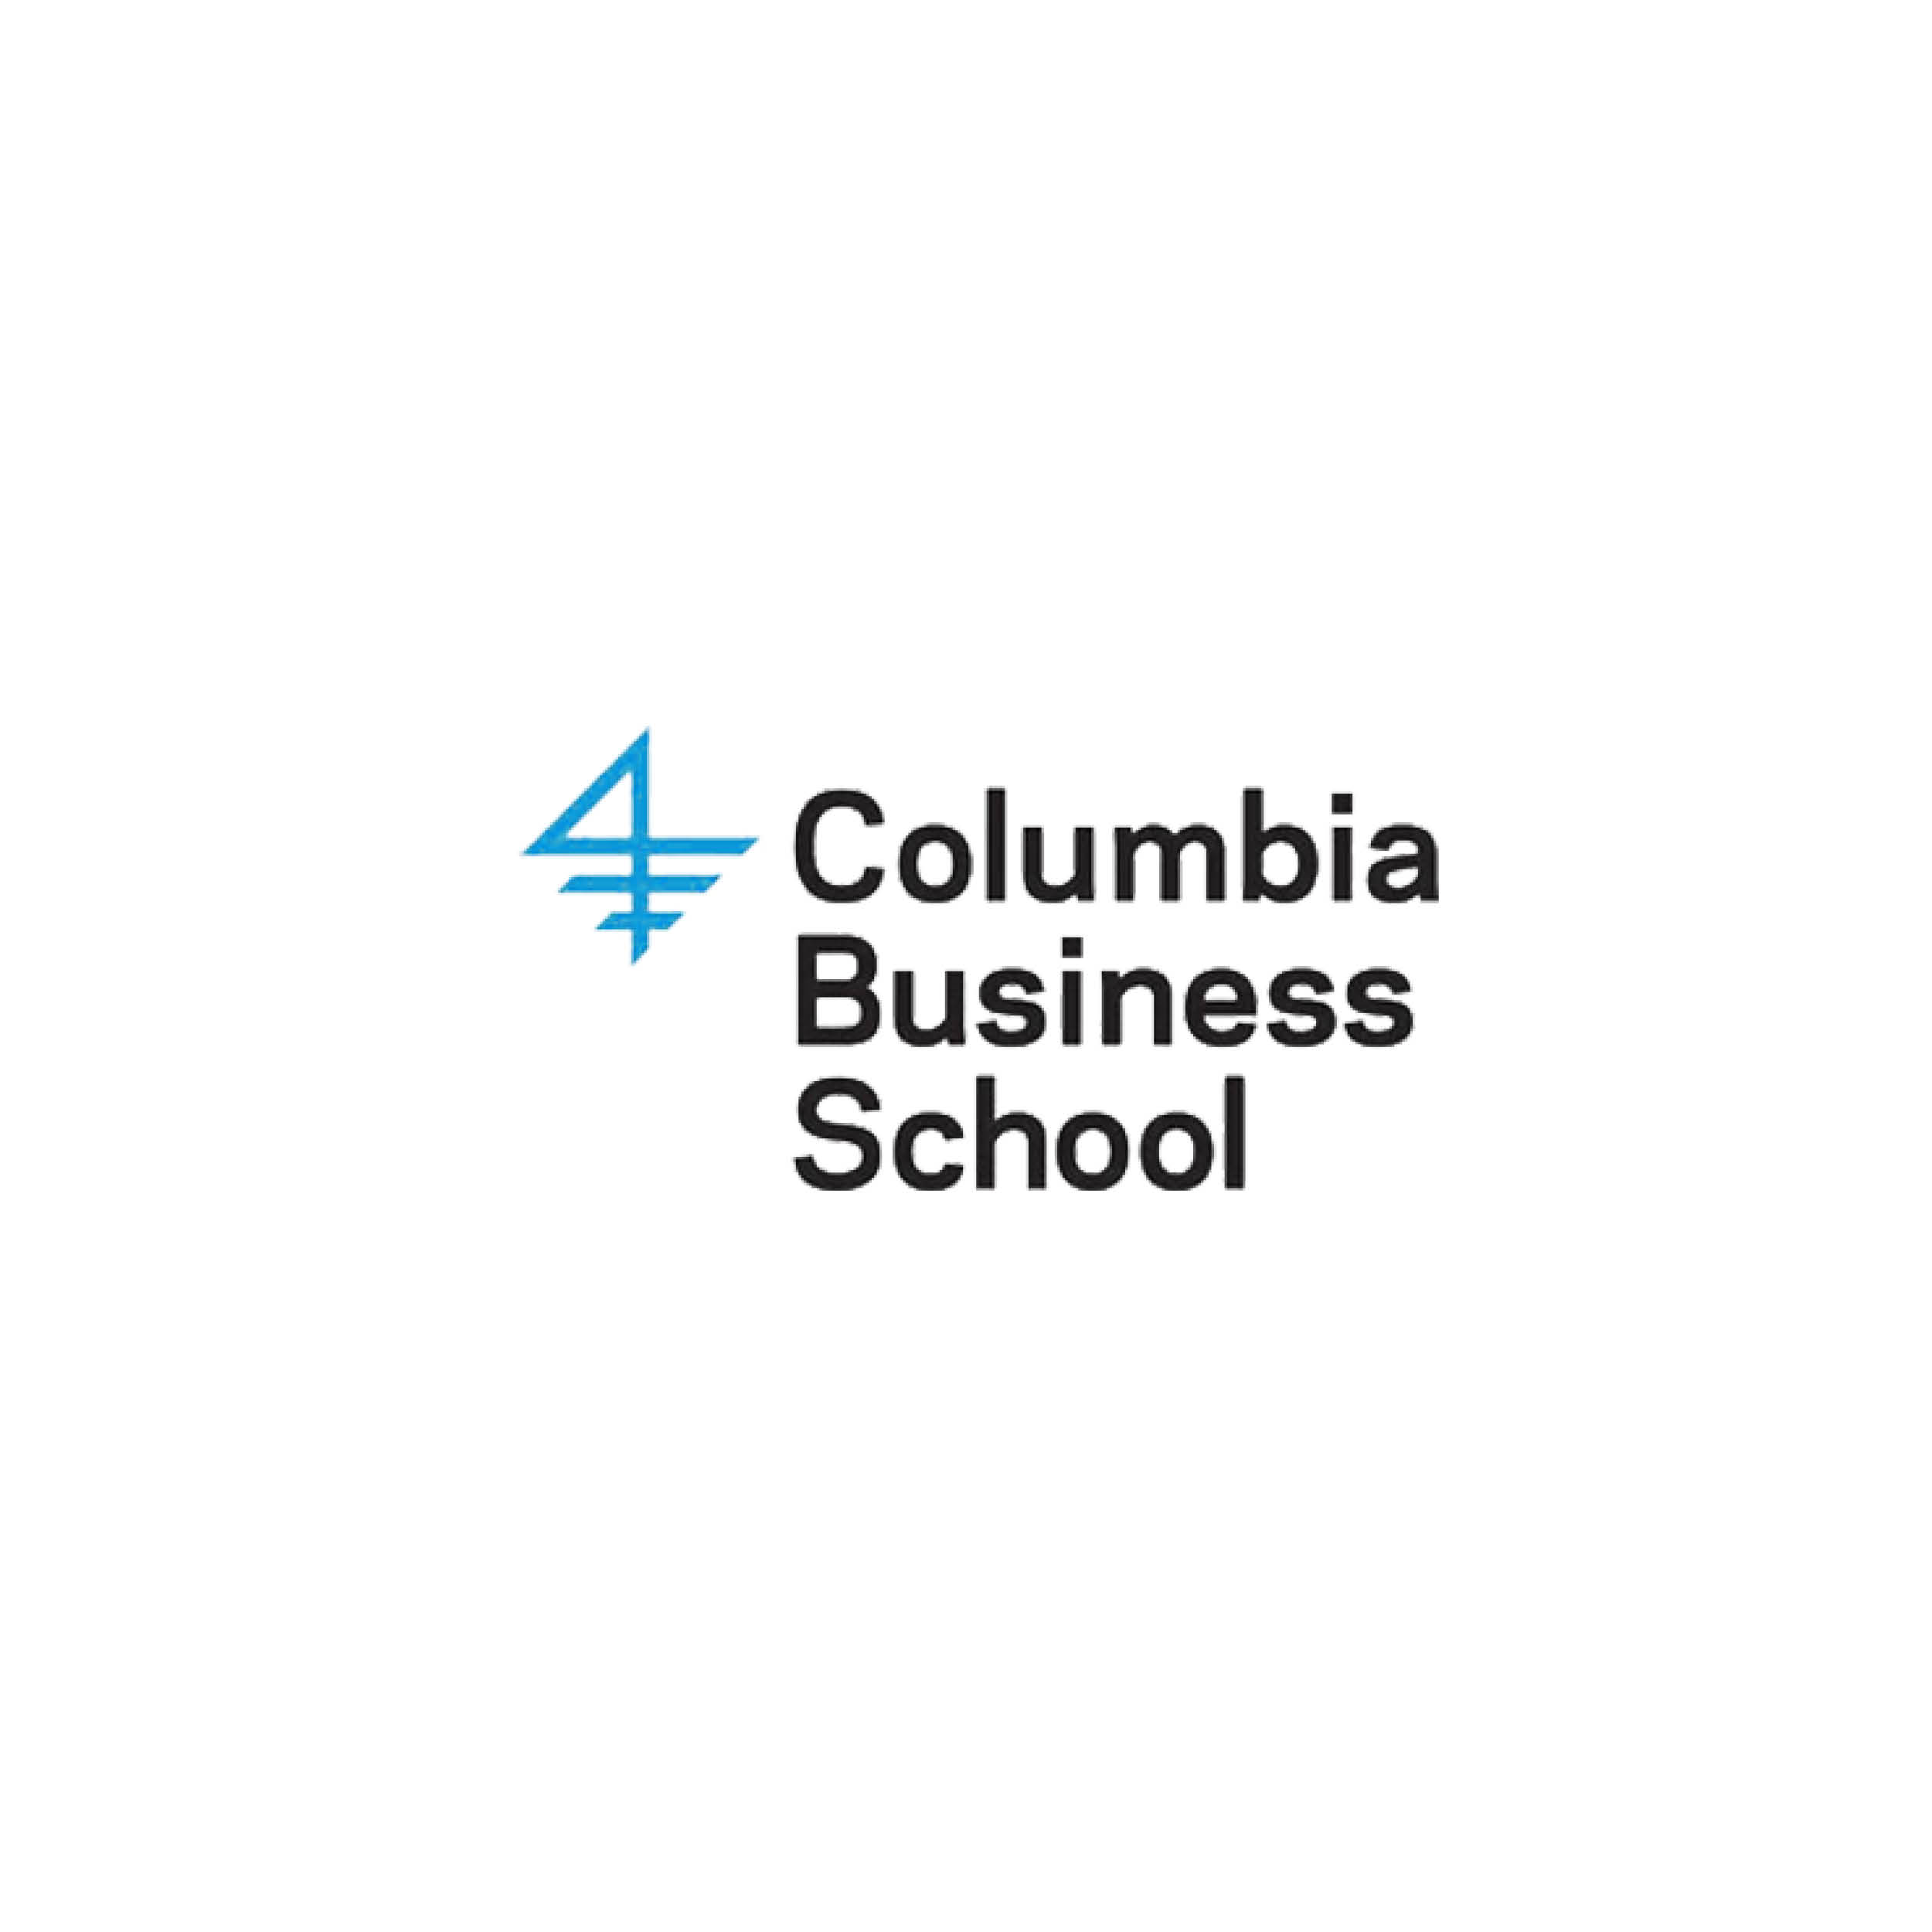 Columbia Business School.jpg